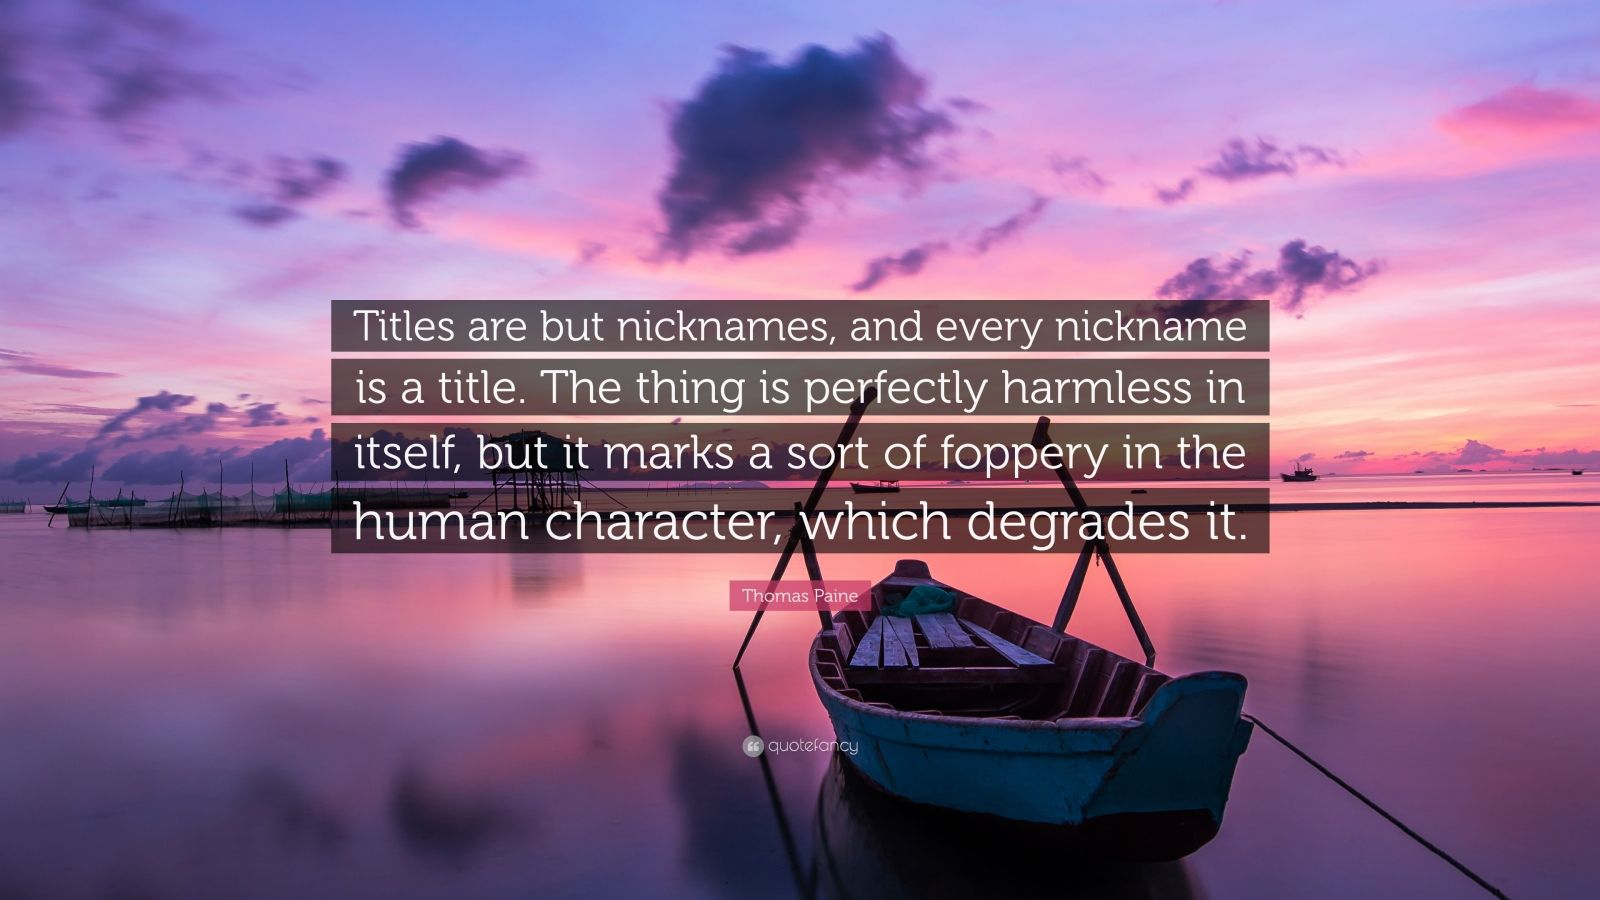 """Thomas Paine Quote: """"Titles are but nicknames, and every nickname is a title. The thing is perfectly harmless in itself, but it marks a sort of foppery in the human character, which degrades it."""""""